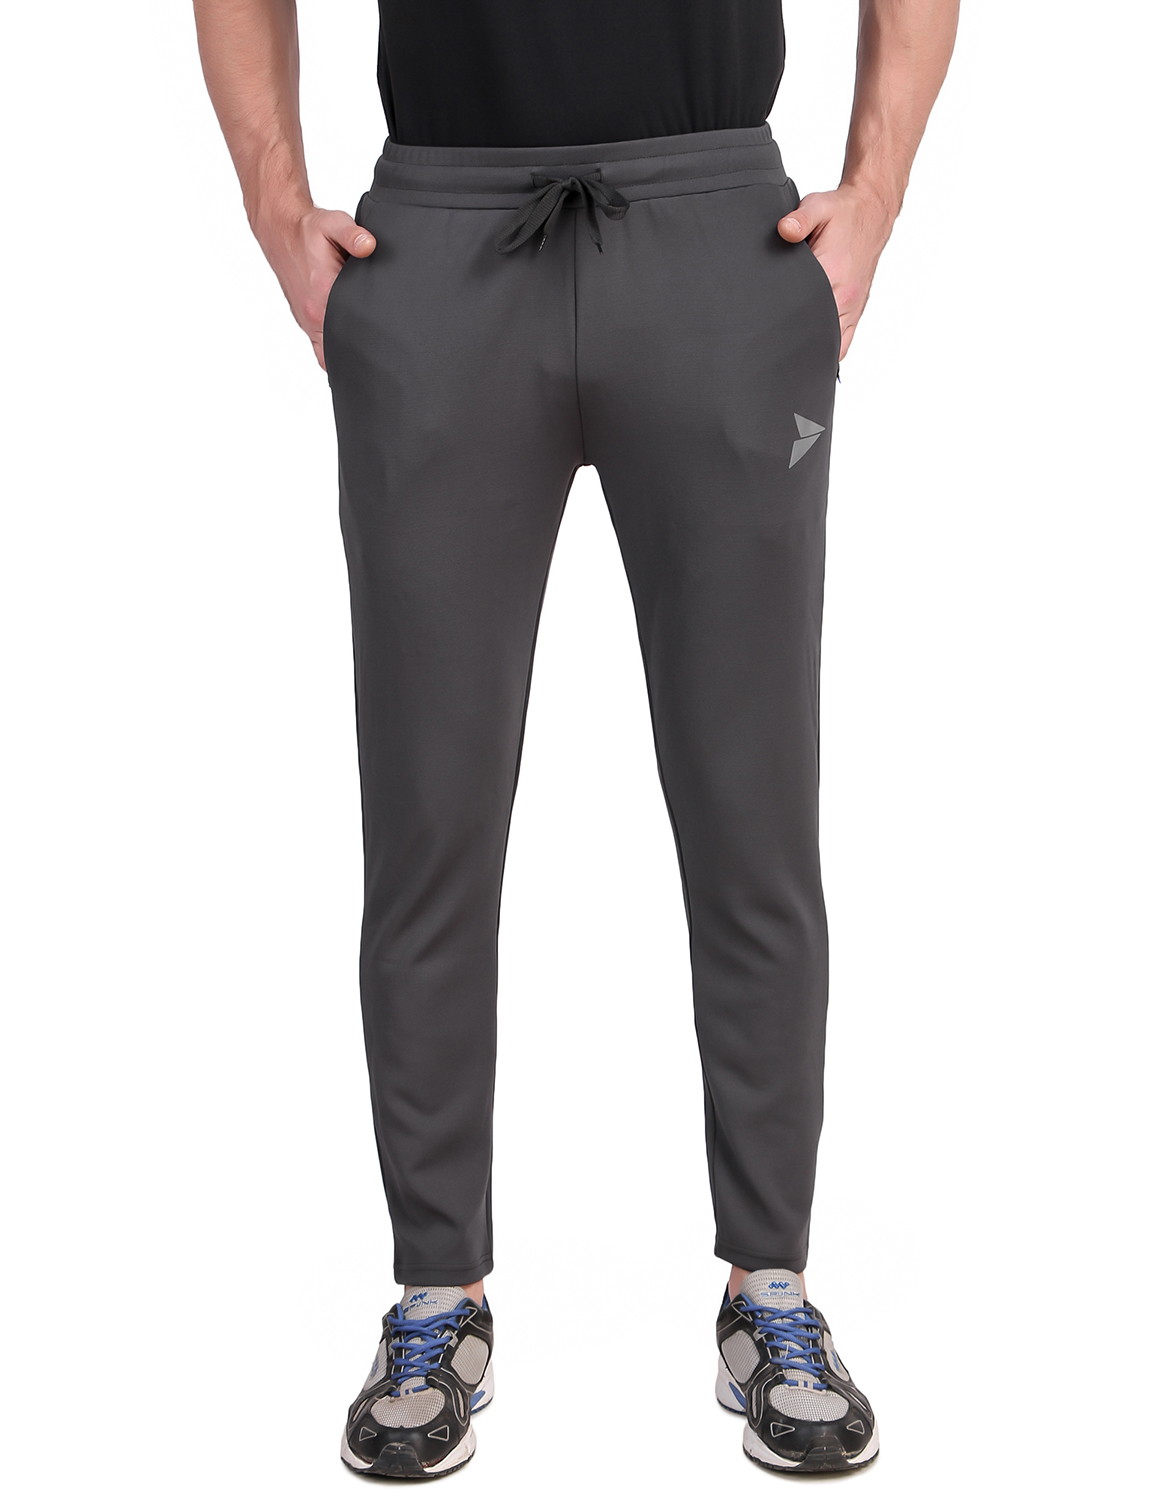 Fitinc | Fitinc Grey Track Pant with Concealed Zipper Pockets